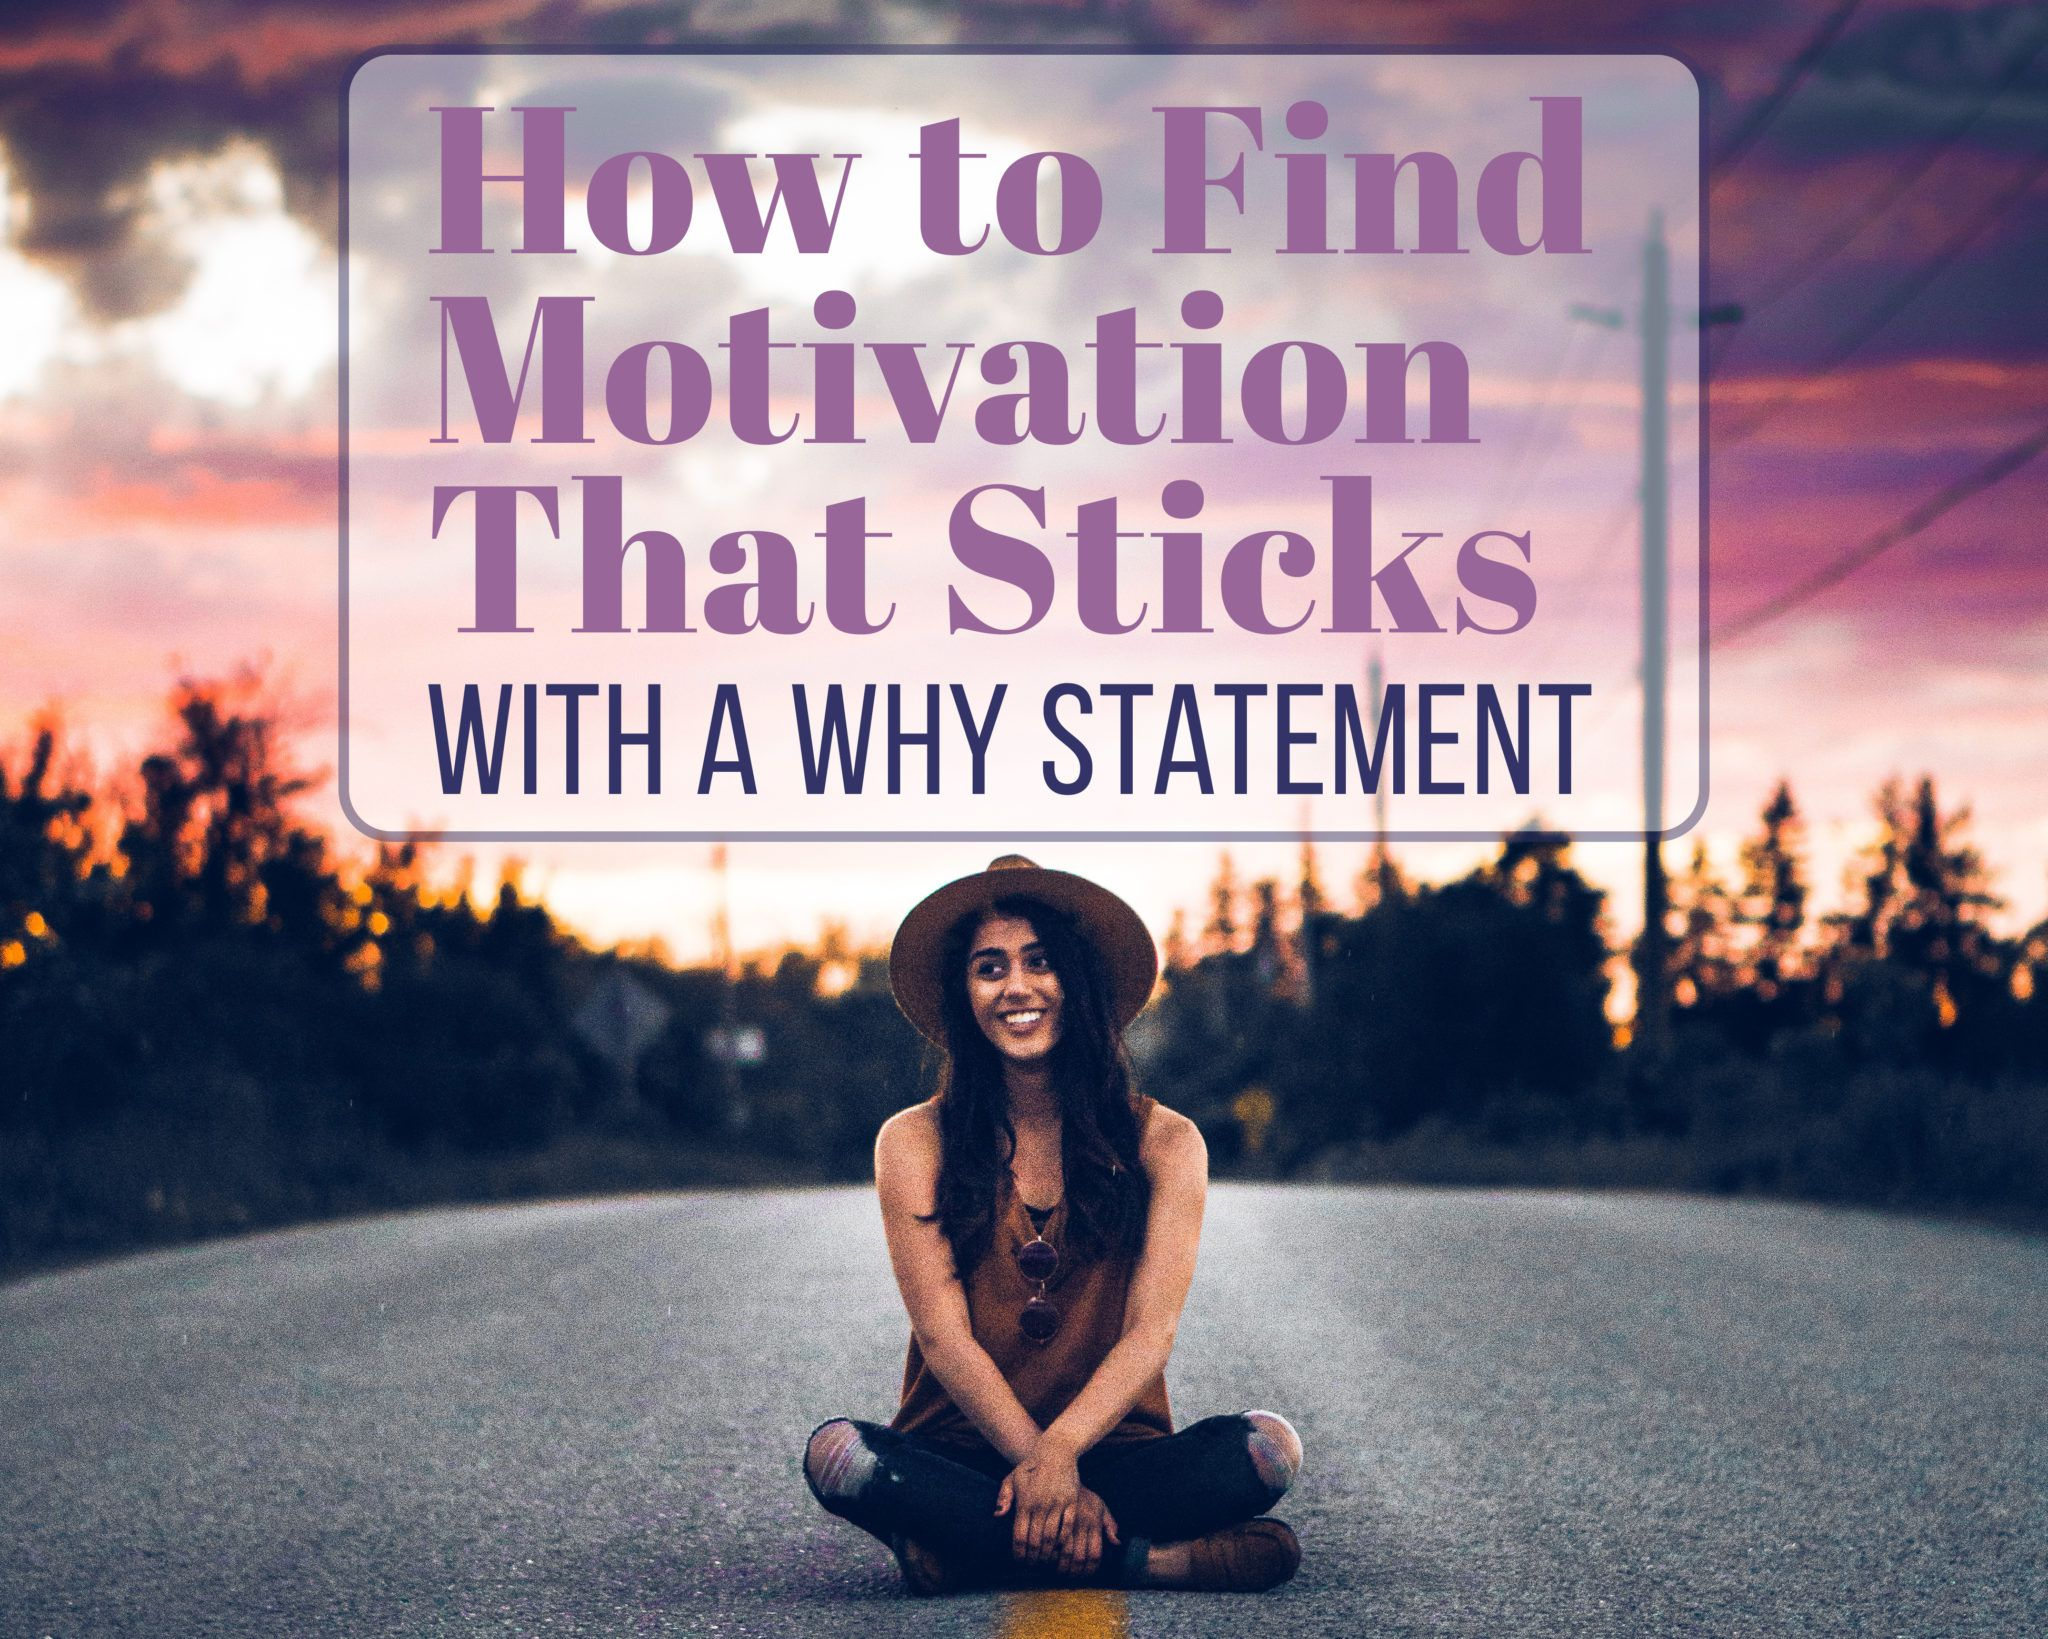 How To Find Motivation That Sticks With A Why Statement